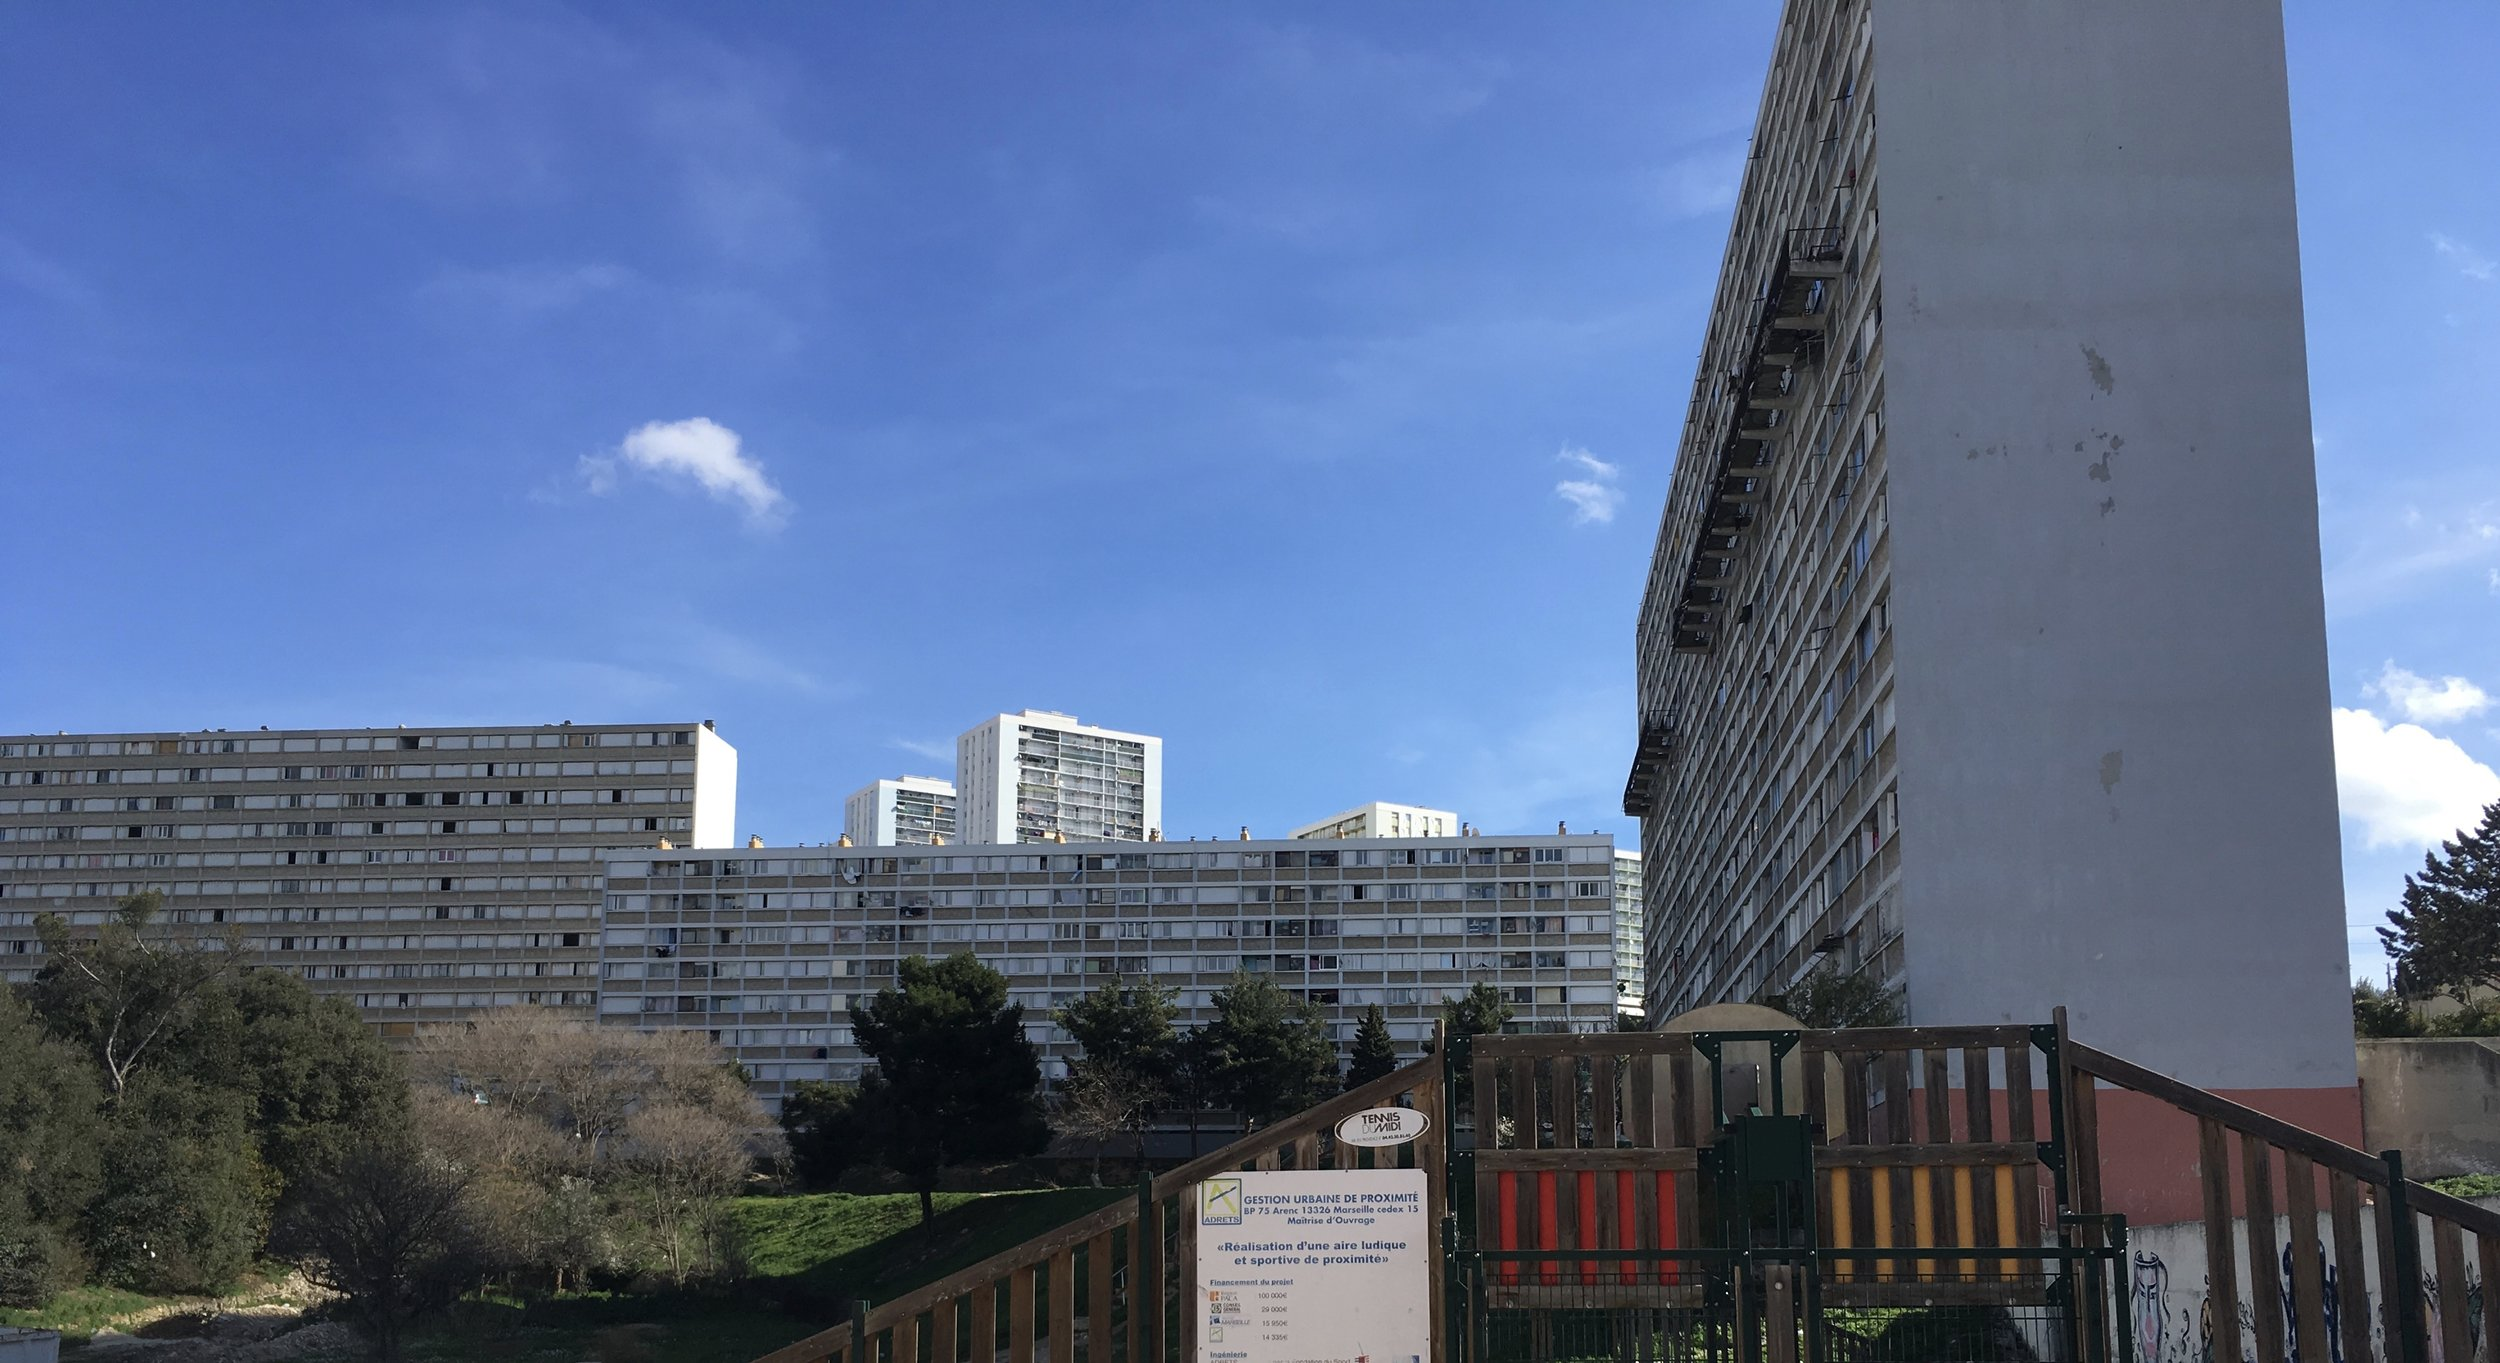 Housing projects on the outskirts of the city.